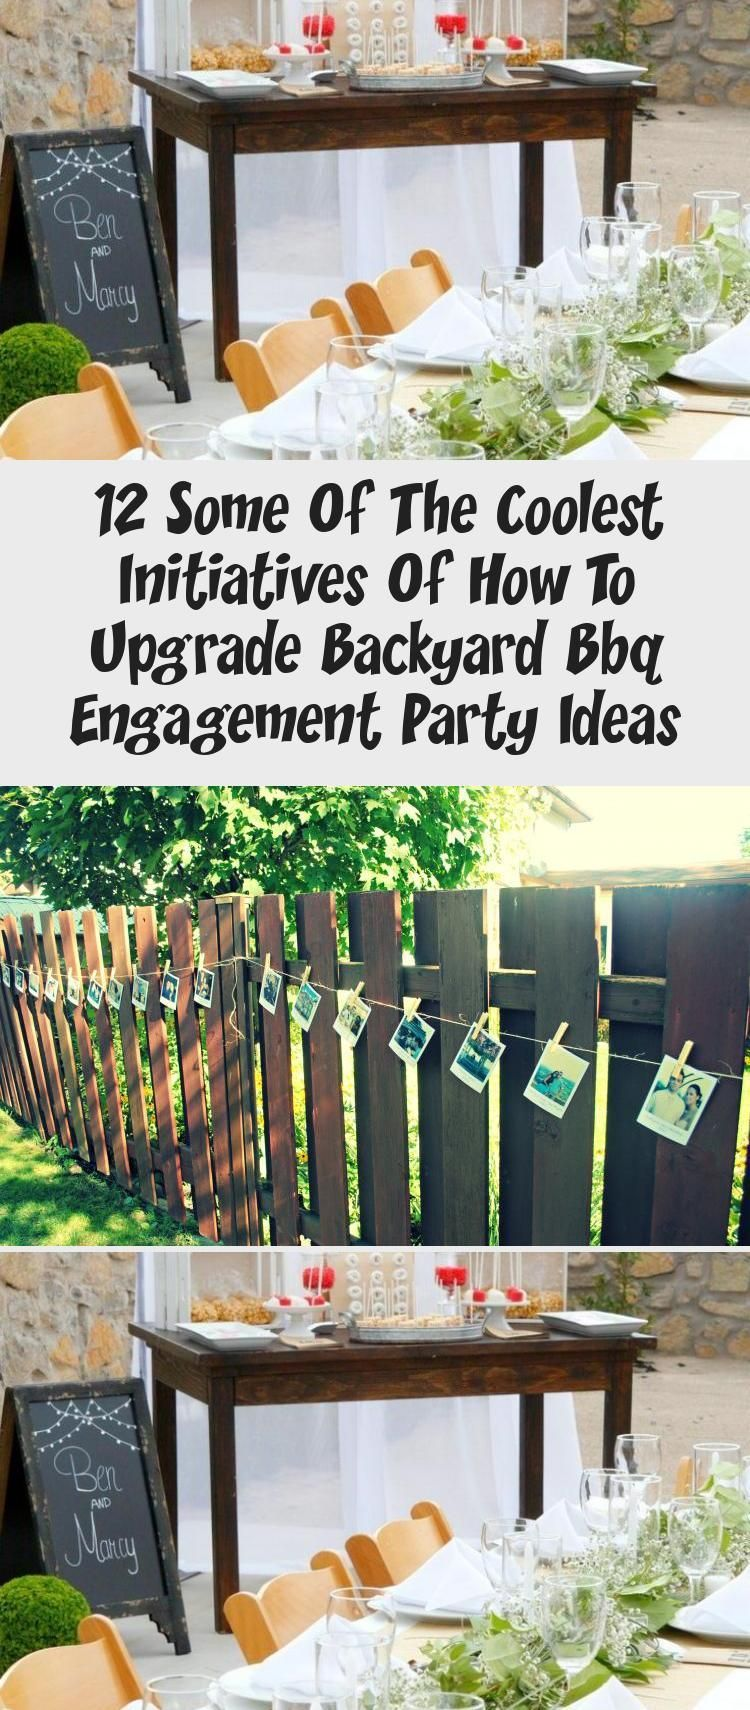 12 Some Of The Coolest Initiatives Of How To Upgrade Backyard Bbq Engagement Party Ideas - Wedding #engagementpartyideasdecorations 12 Some of the Coolest Initiatives of How to Upgrade Backyard Bbq Engagement Party Ideas #Homedecorlove #bohoweddingShower #bohoweddingGown #bohoweddingDeko #Elegantbohowedding #bohoweddingHeadpiece